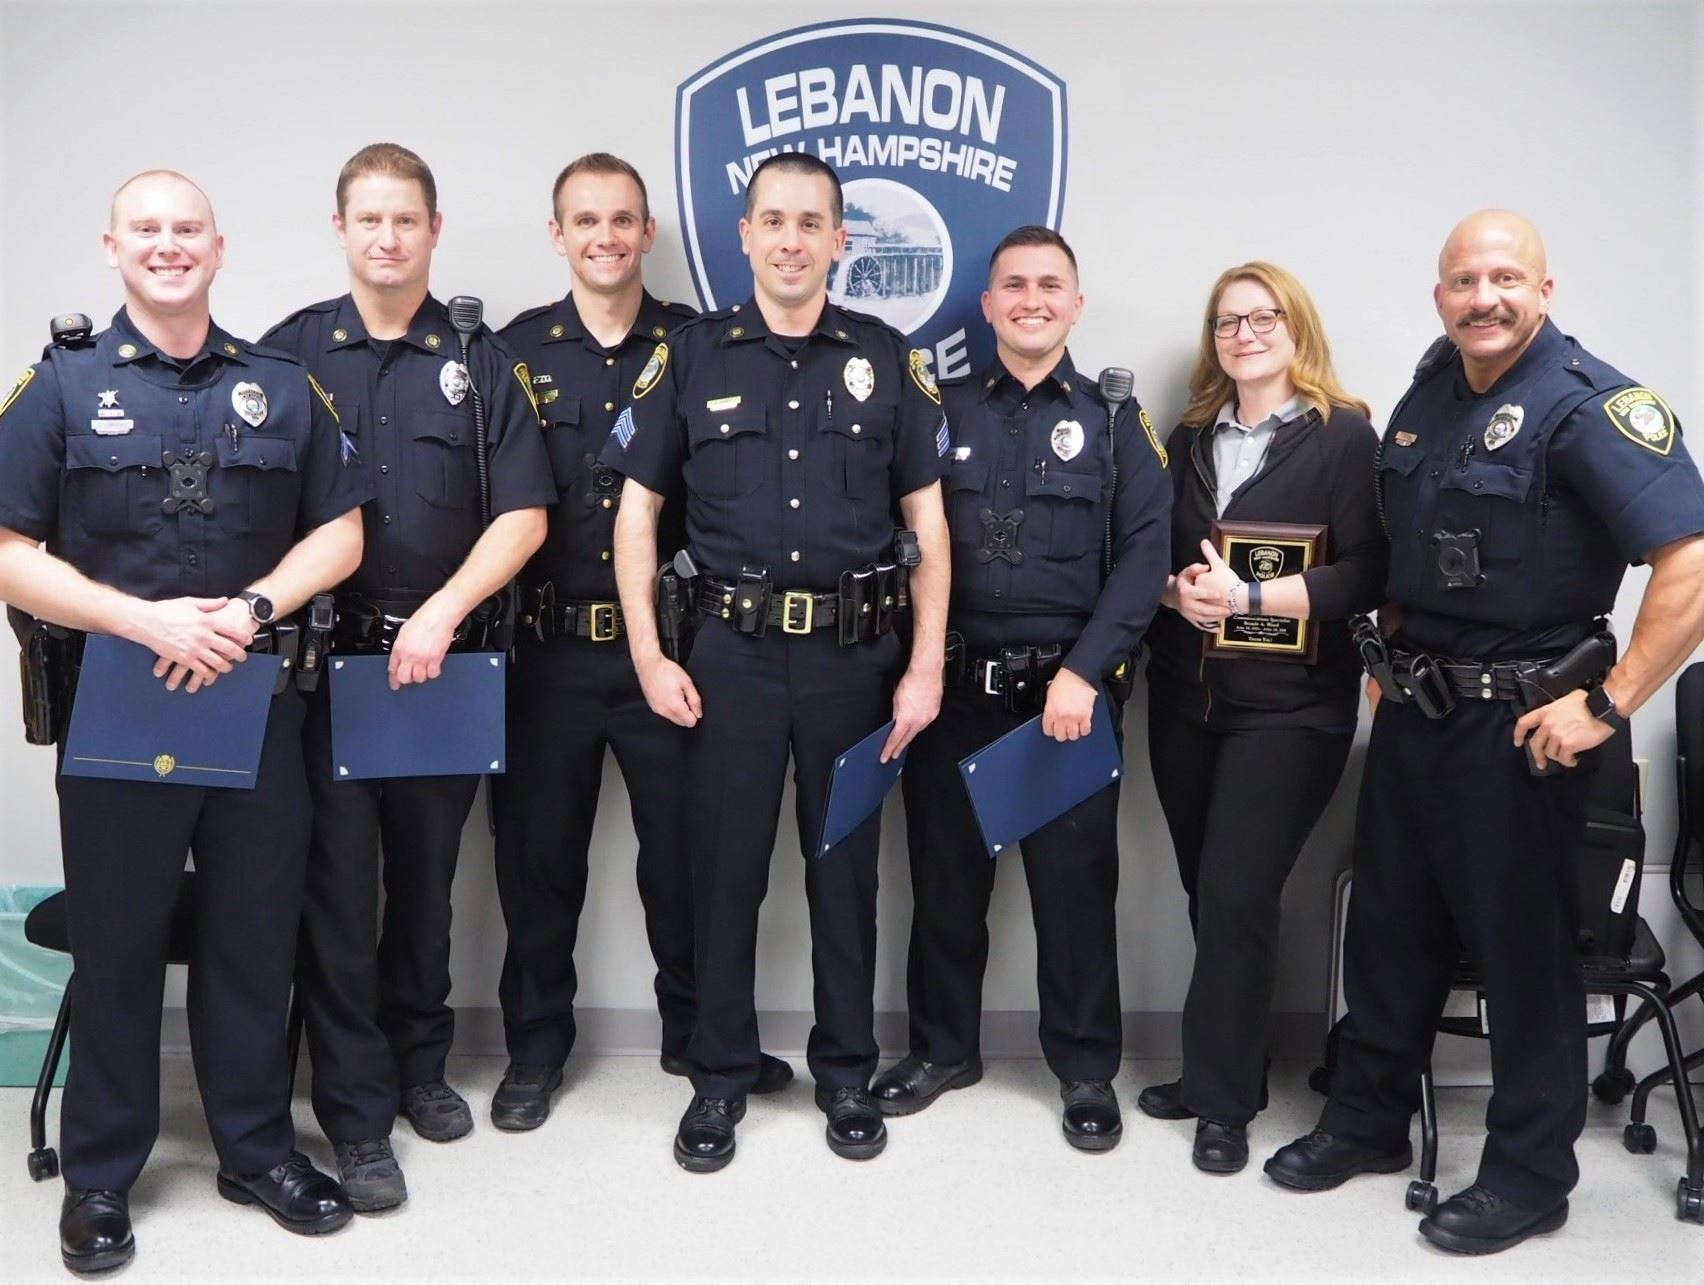 Group photo of several officers and dispatcher